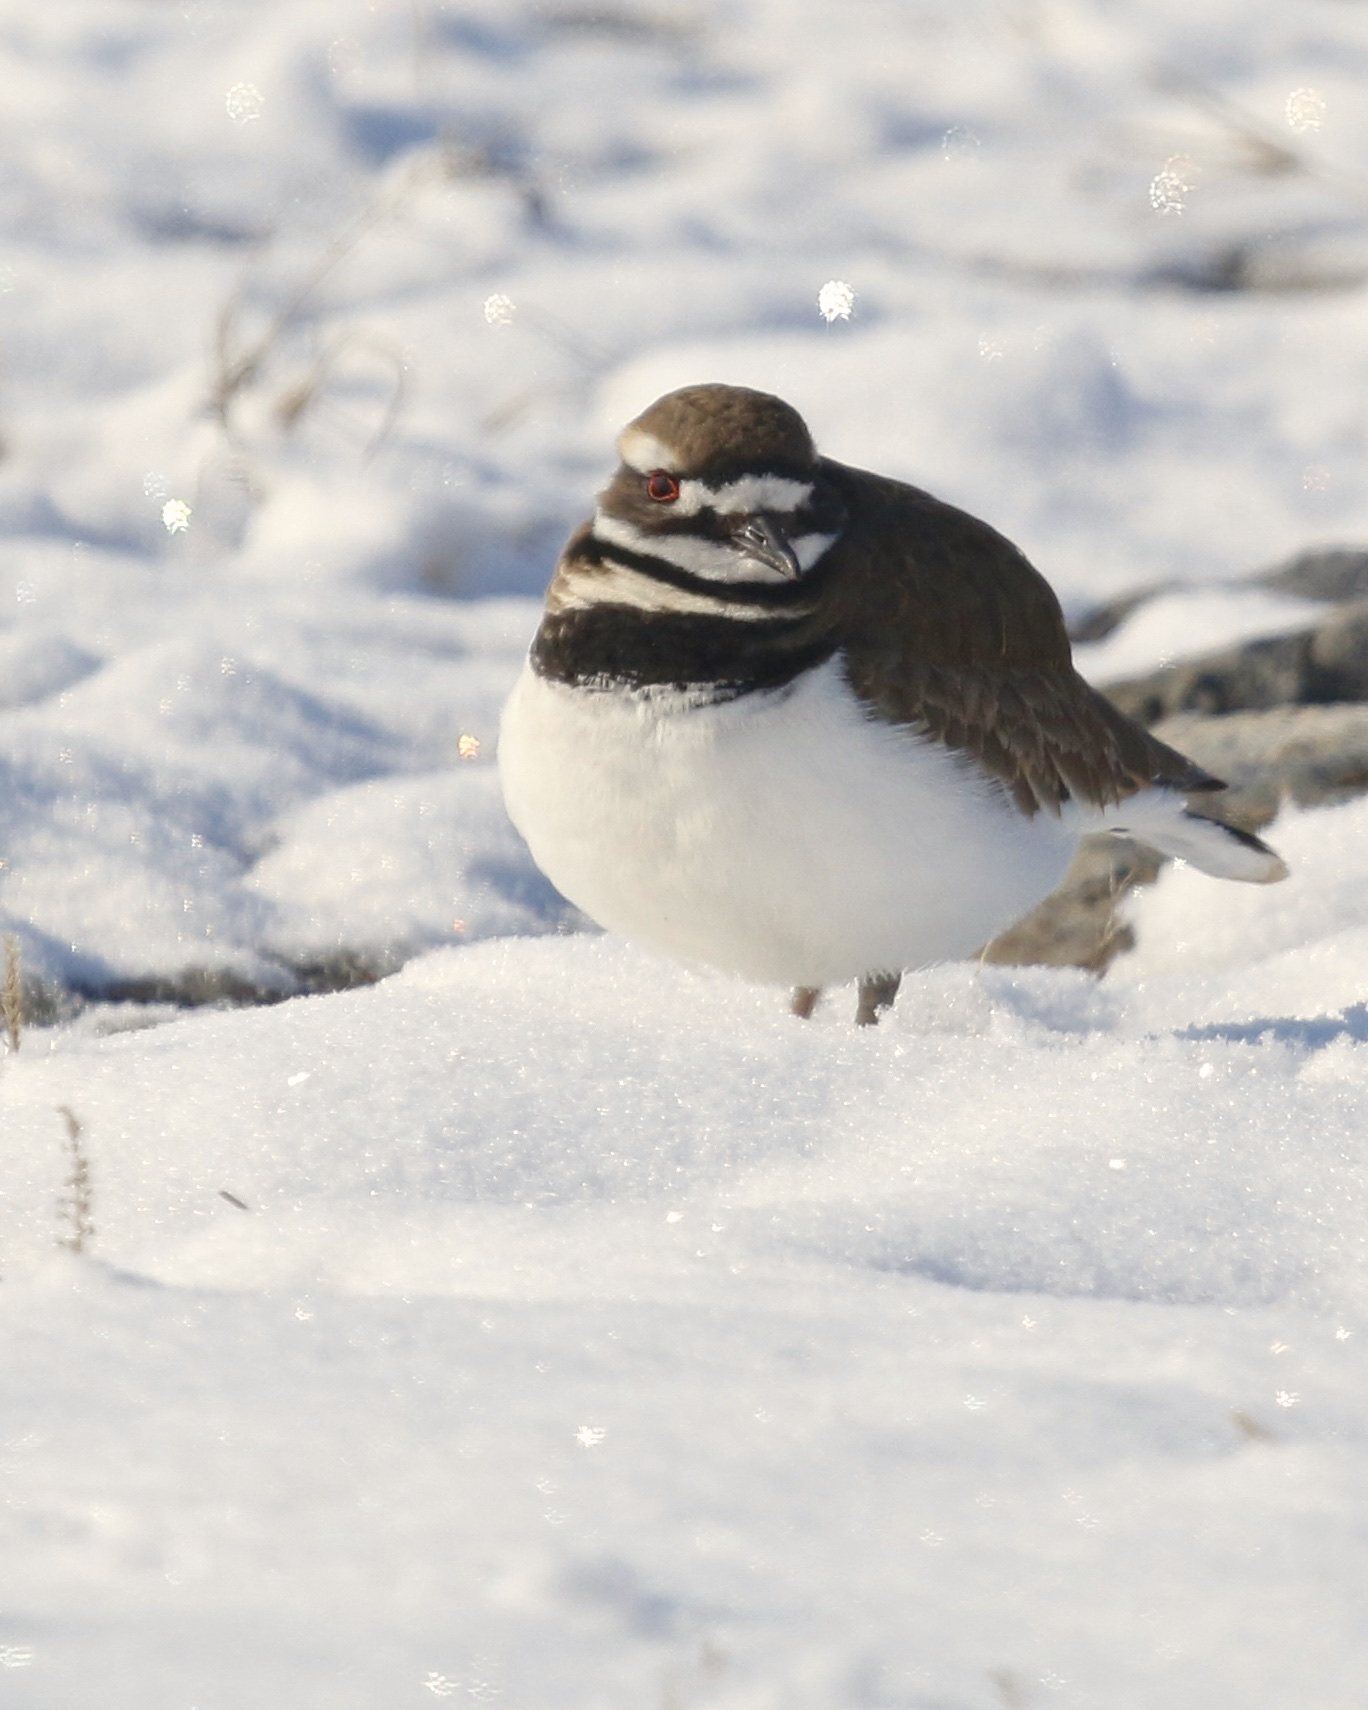 ~One of five Killdeer in the freshly fallen snow on the side of Onion Avenue in New Hampton, NY 3/21/15.~